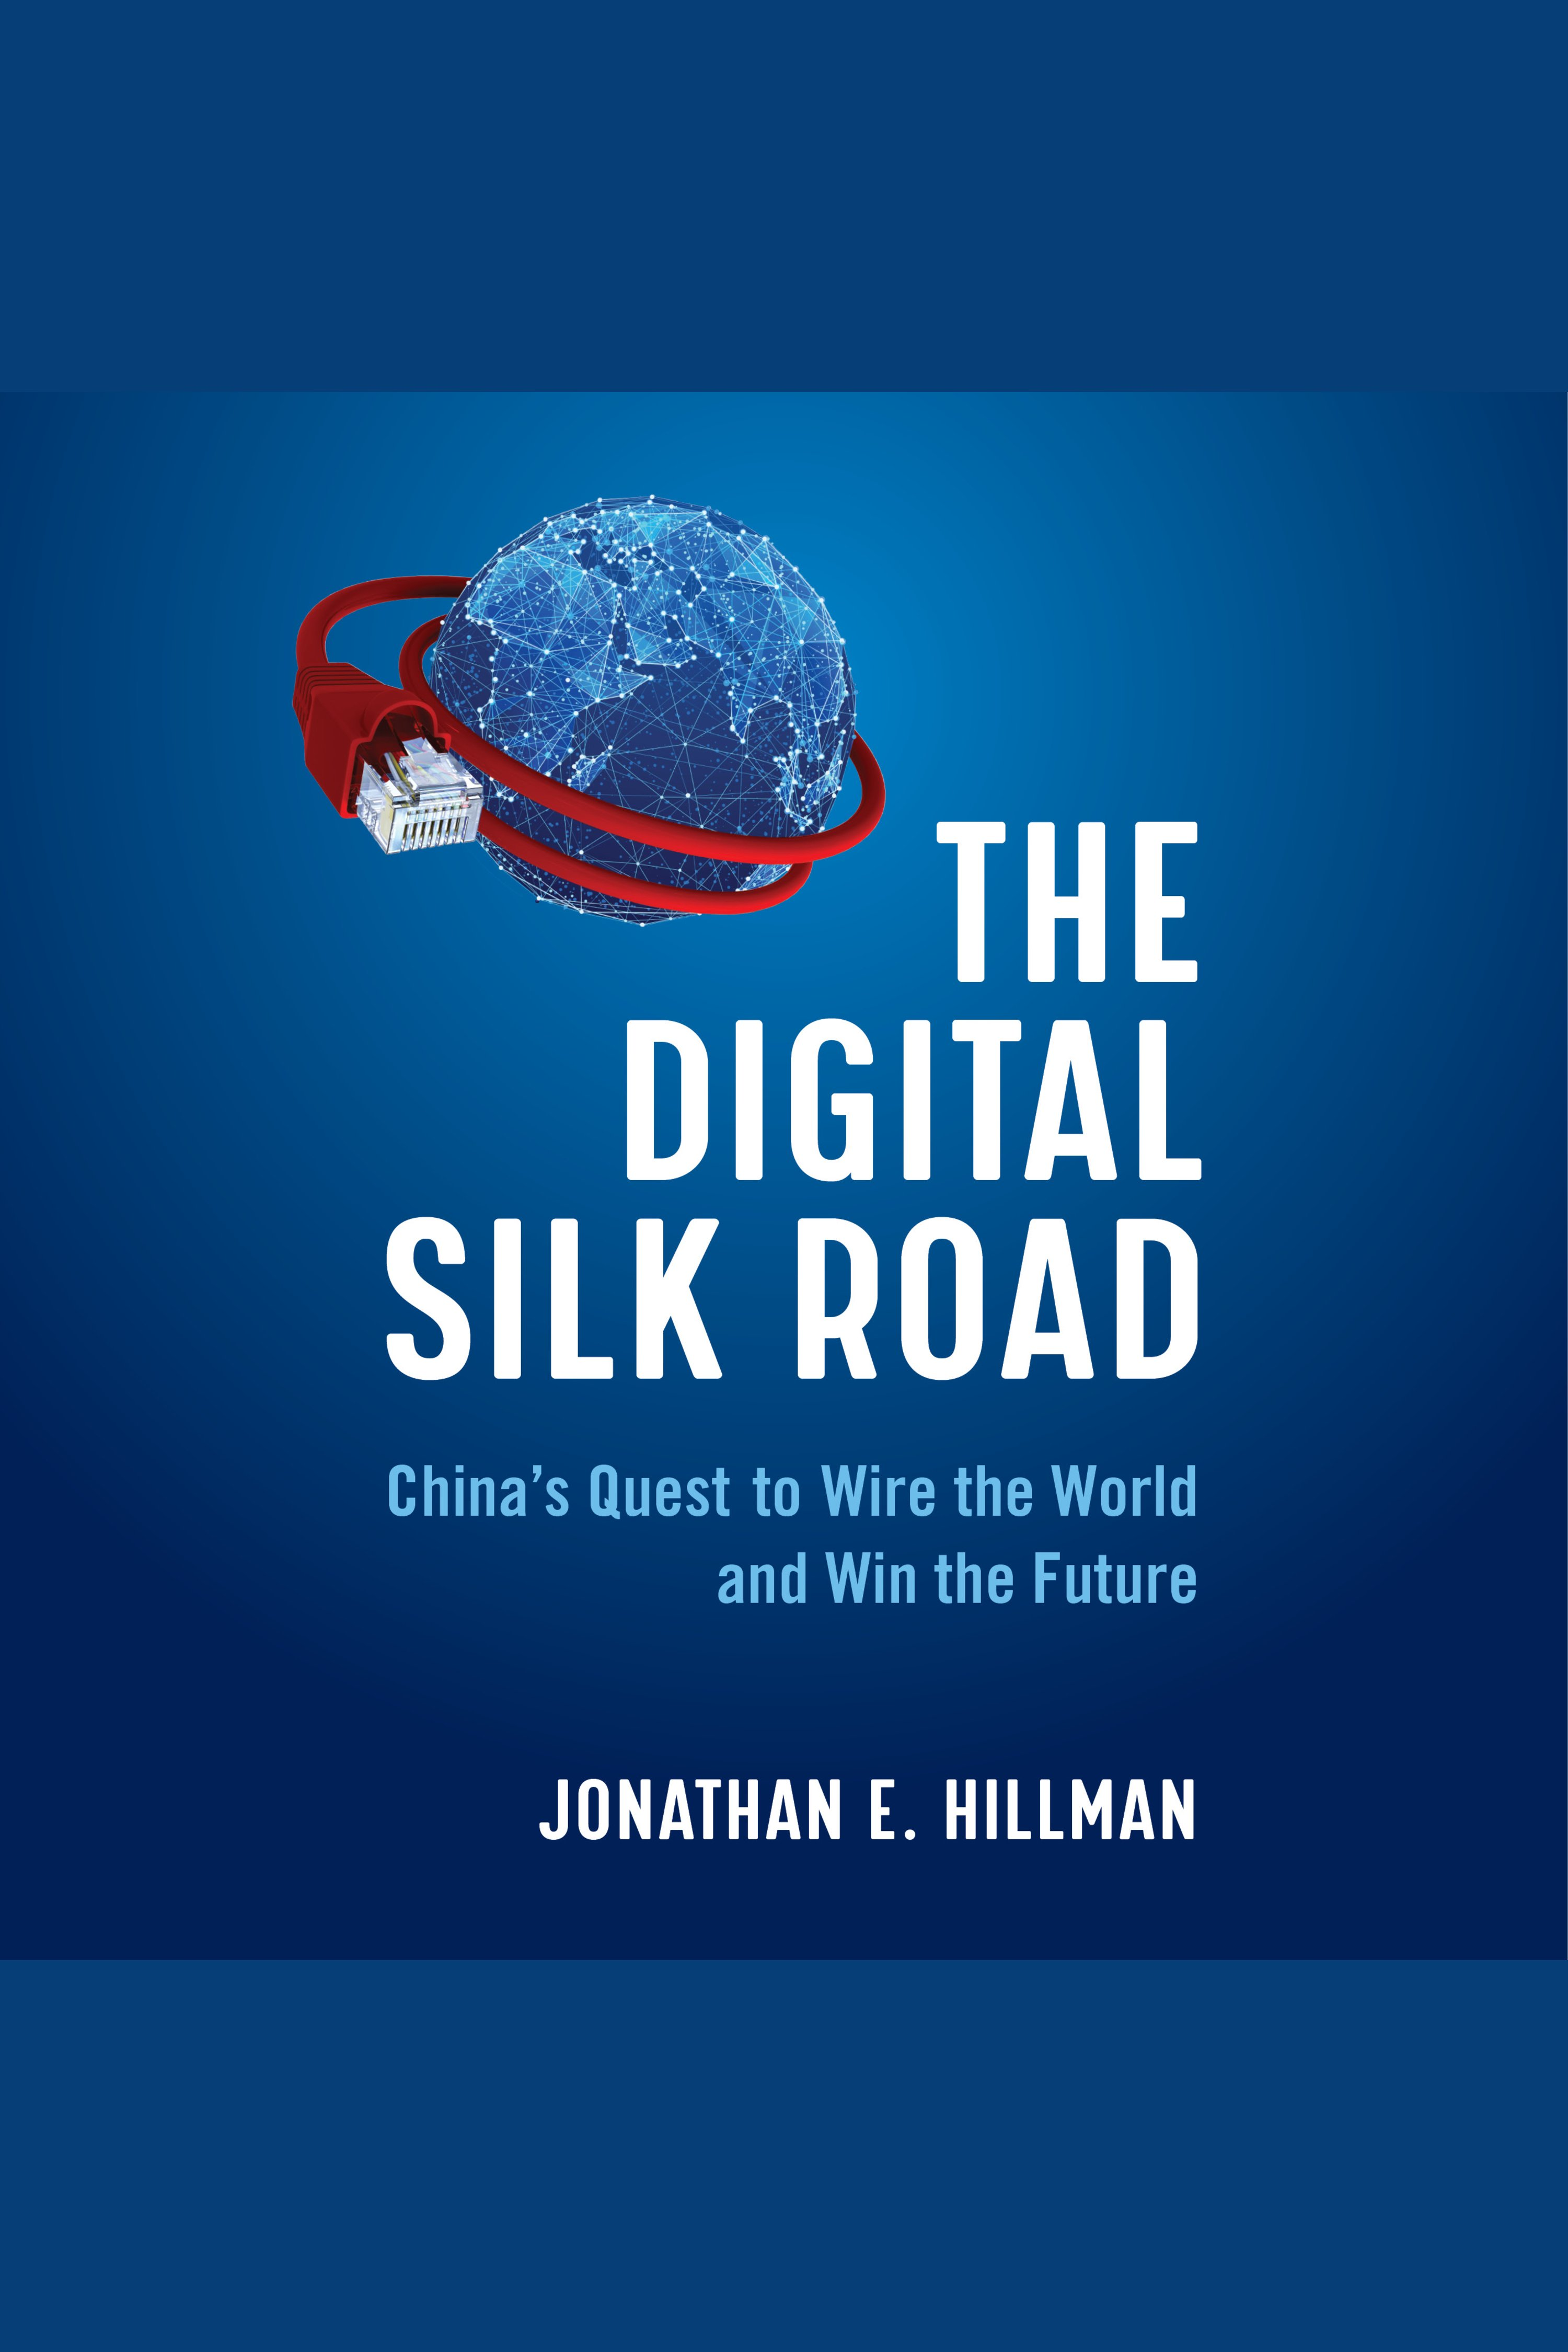 Digital Silk Road, The China's Quest to Wire the World and Win the Future